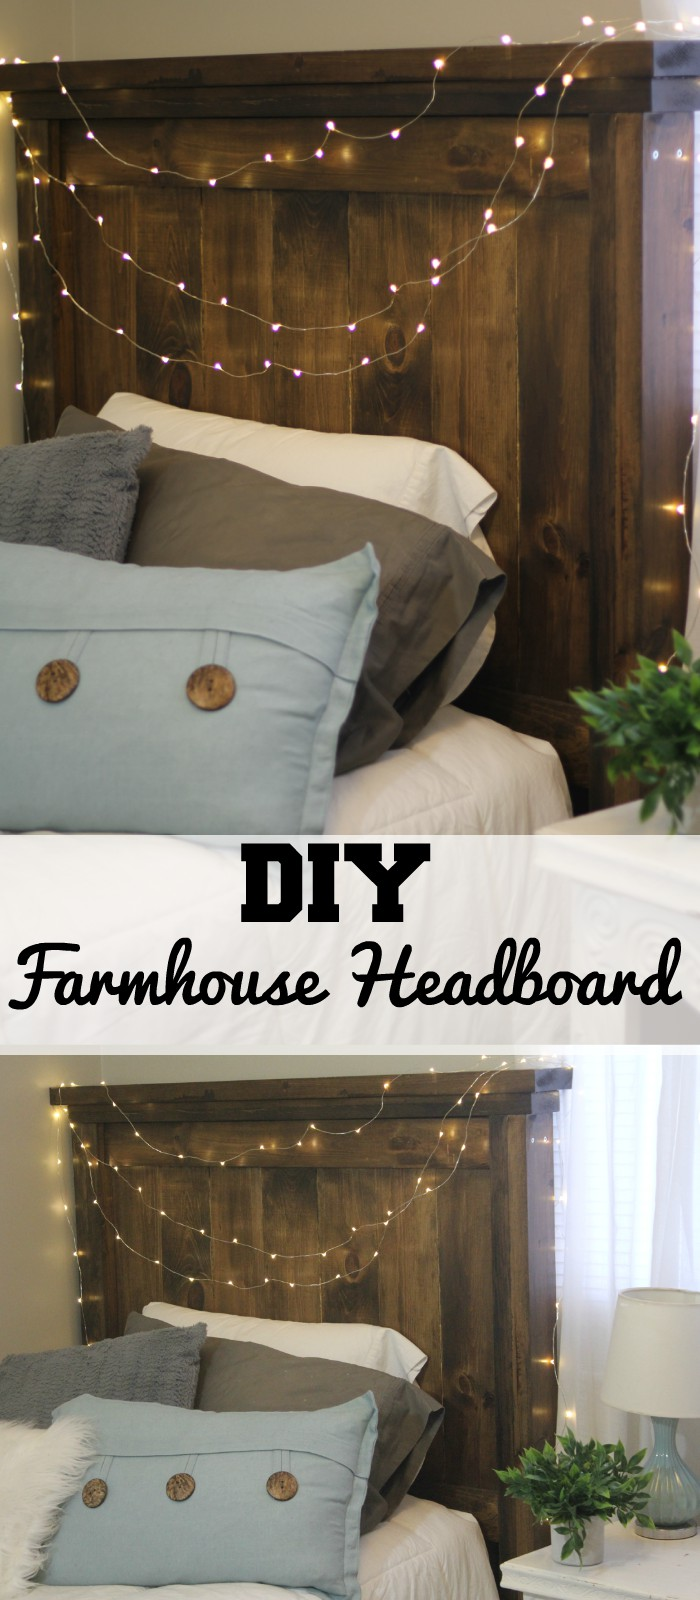 Farmhouse Style Headboard~Have you ever dreamed of making your own Farmhouse Style Headboard? It's not as difficult as you think.